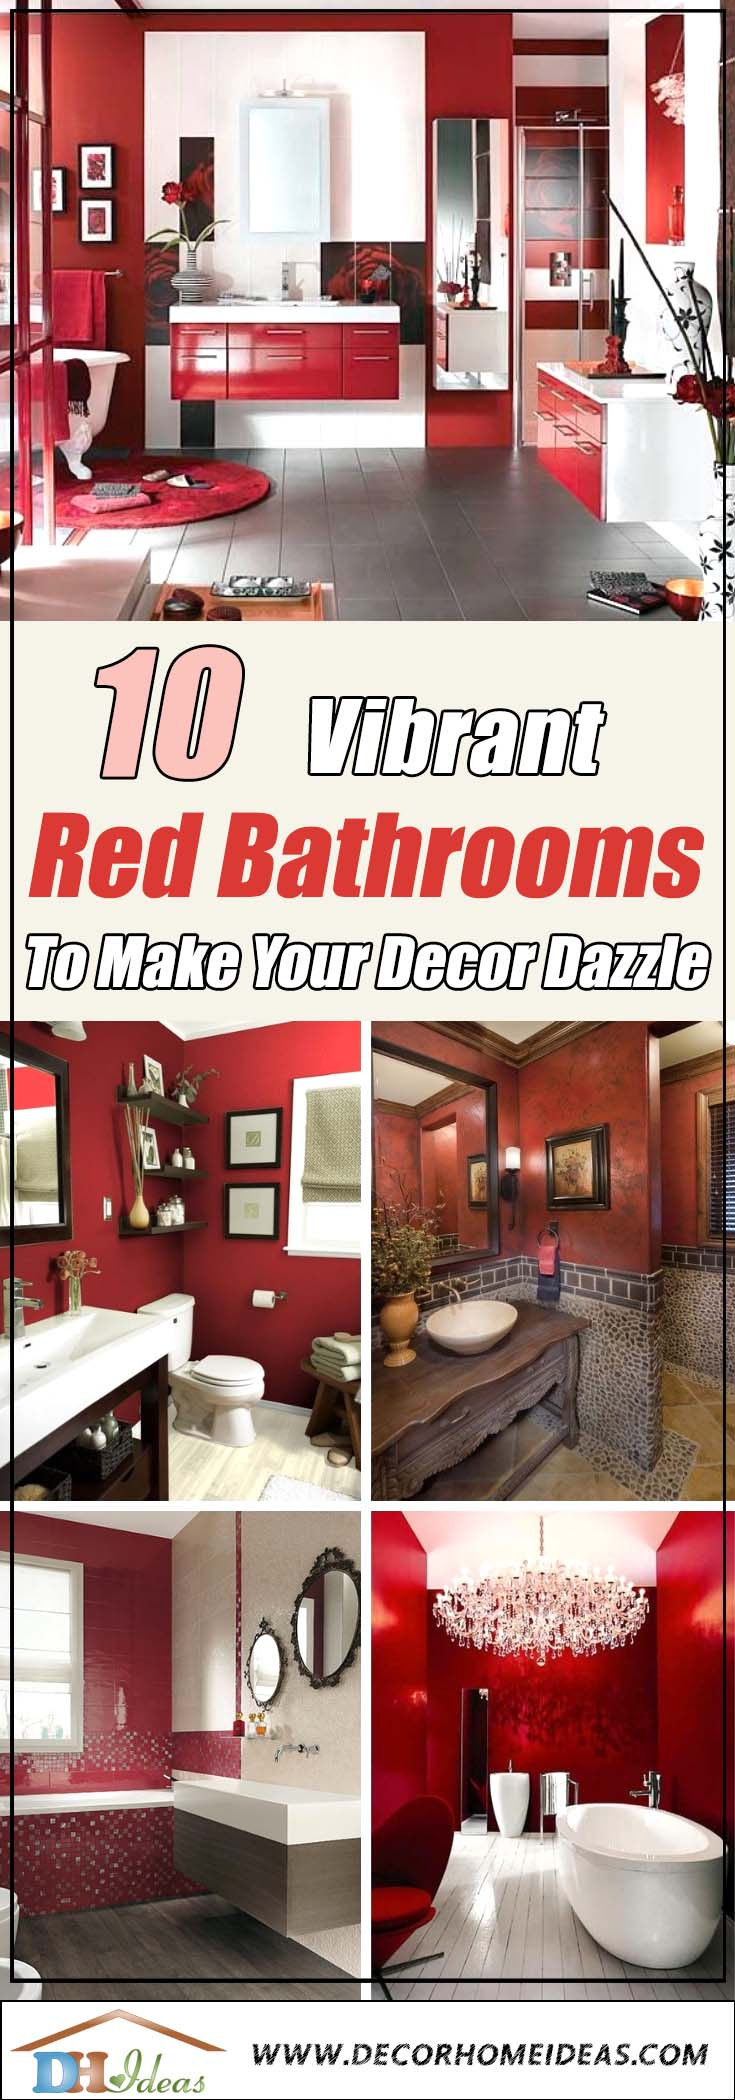 10 Vibrant Red Bathrooms To Make Your Decor Dazzle | Bold colored bathrooms in red #redbathroom #bathroom #bathroomdesign #bathroomideas #bathroomreno #bathroomremodel #decorhomeideas